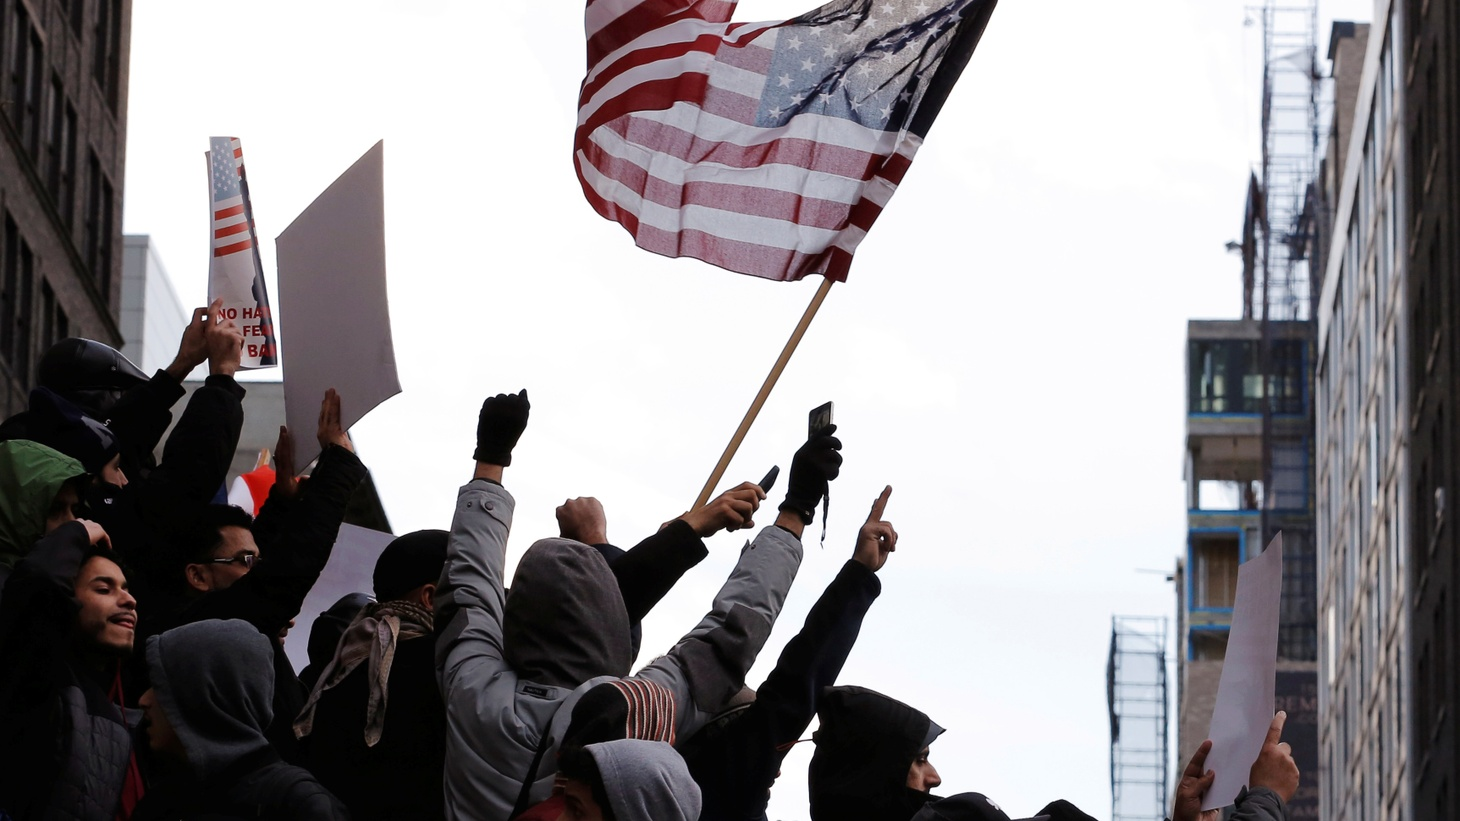 Donald Trump's travel ban on seven Muslim-majority countries -- will the federal government or Washington state prevail? We look at the arguments before the 9th Circuit Court of Appeals.